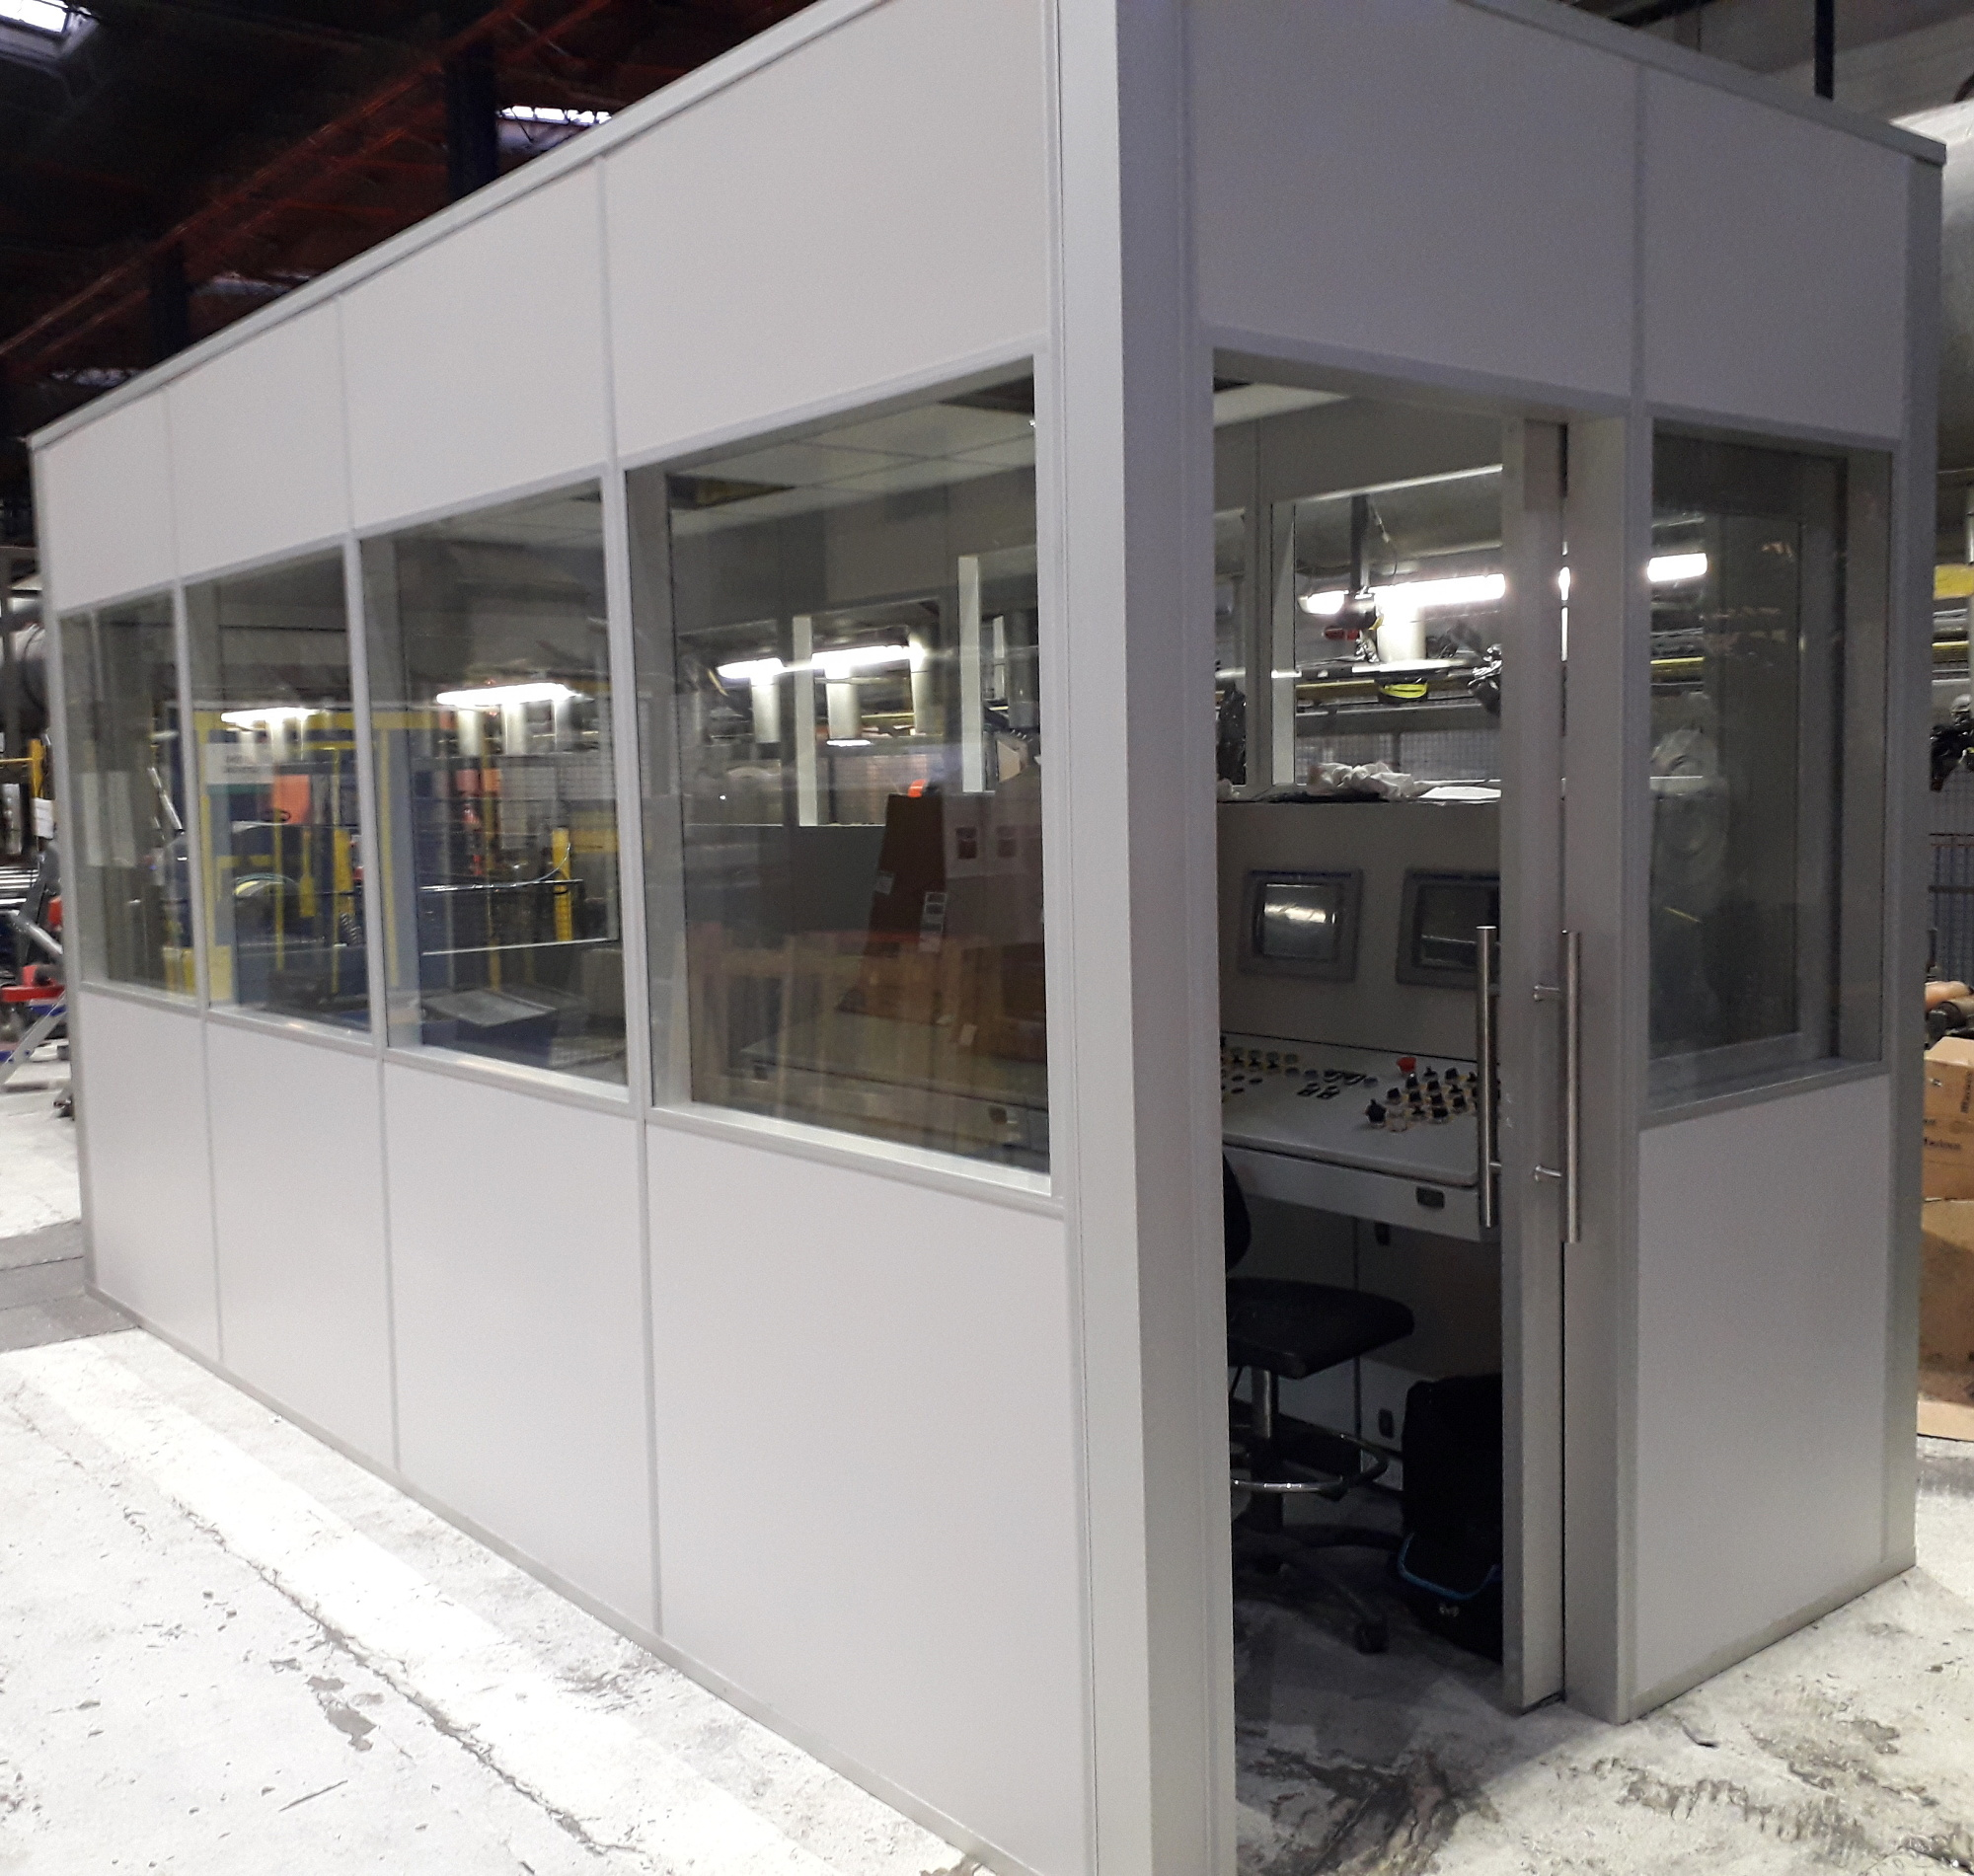 Inhall units for a production facility in Poland